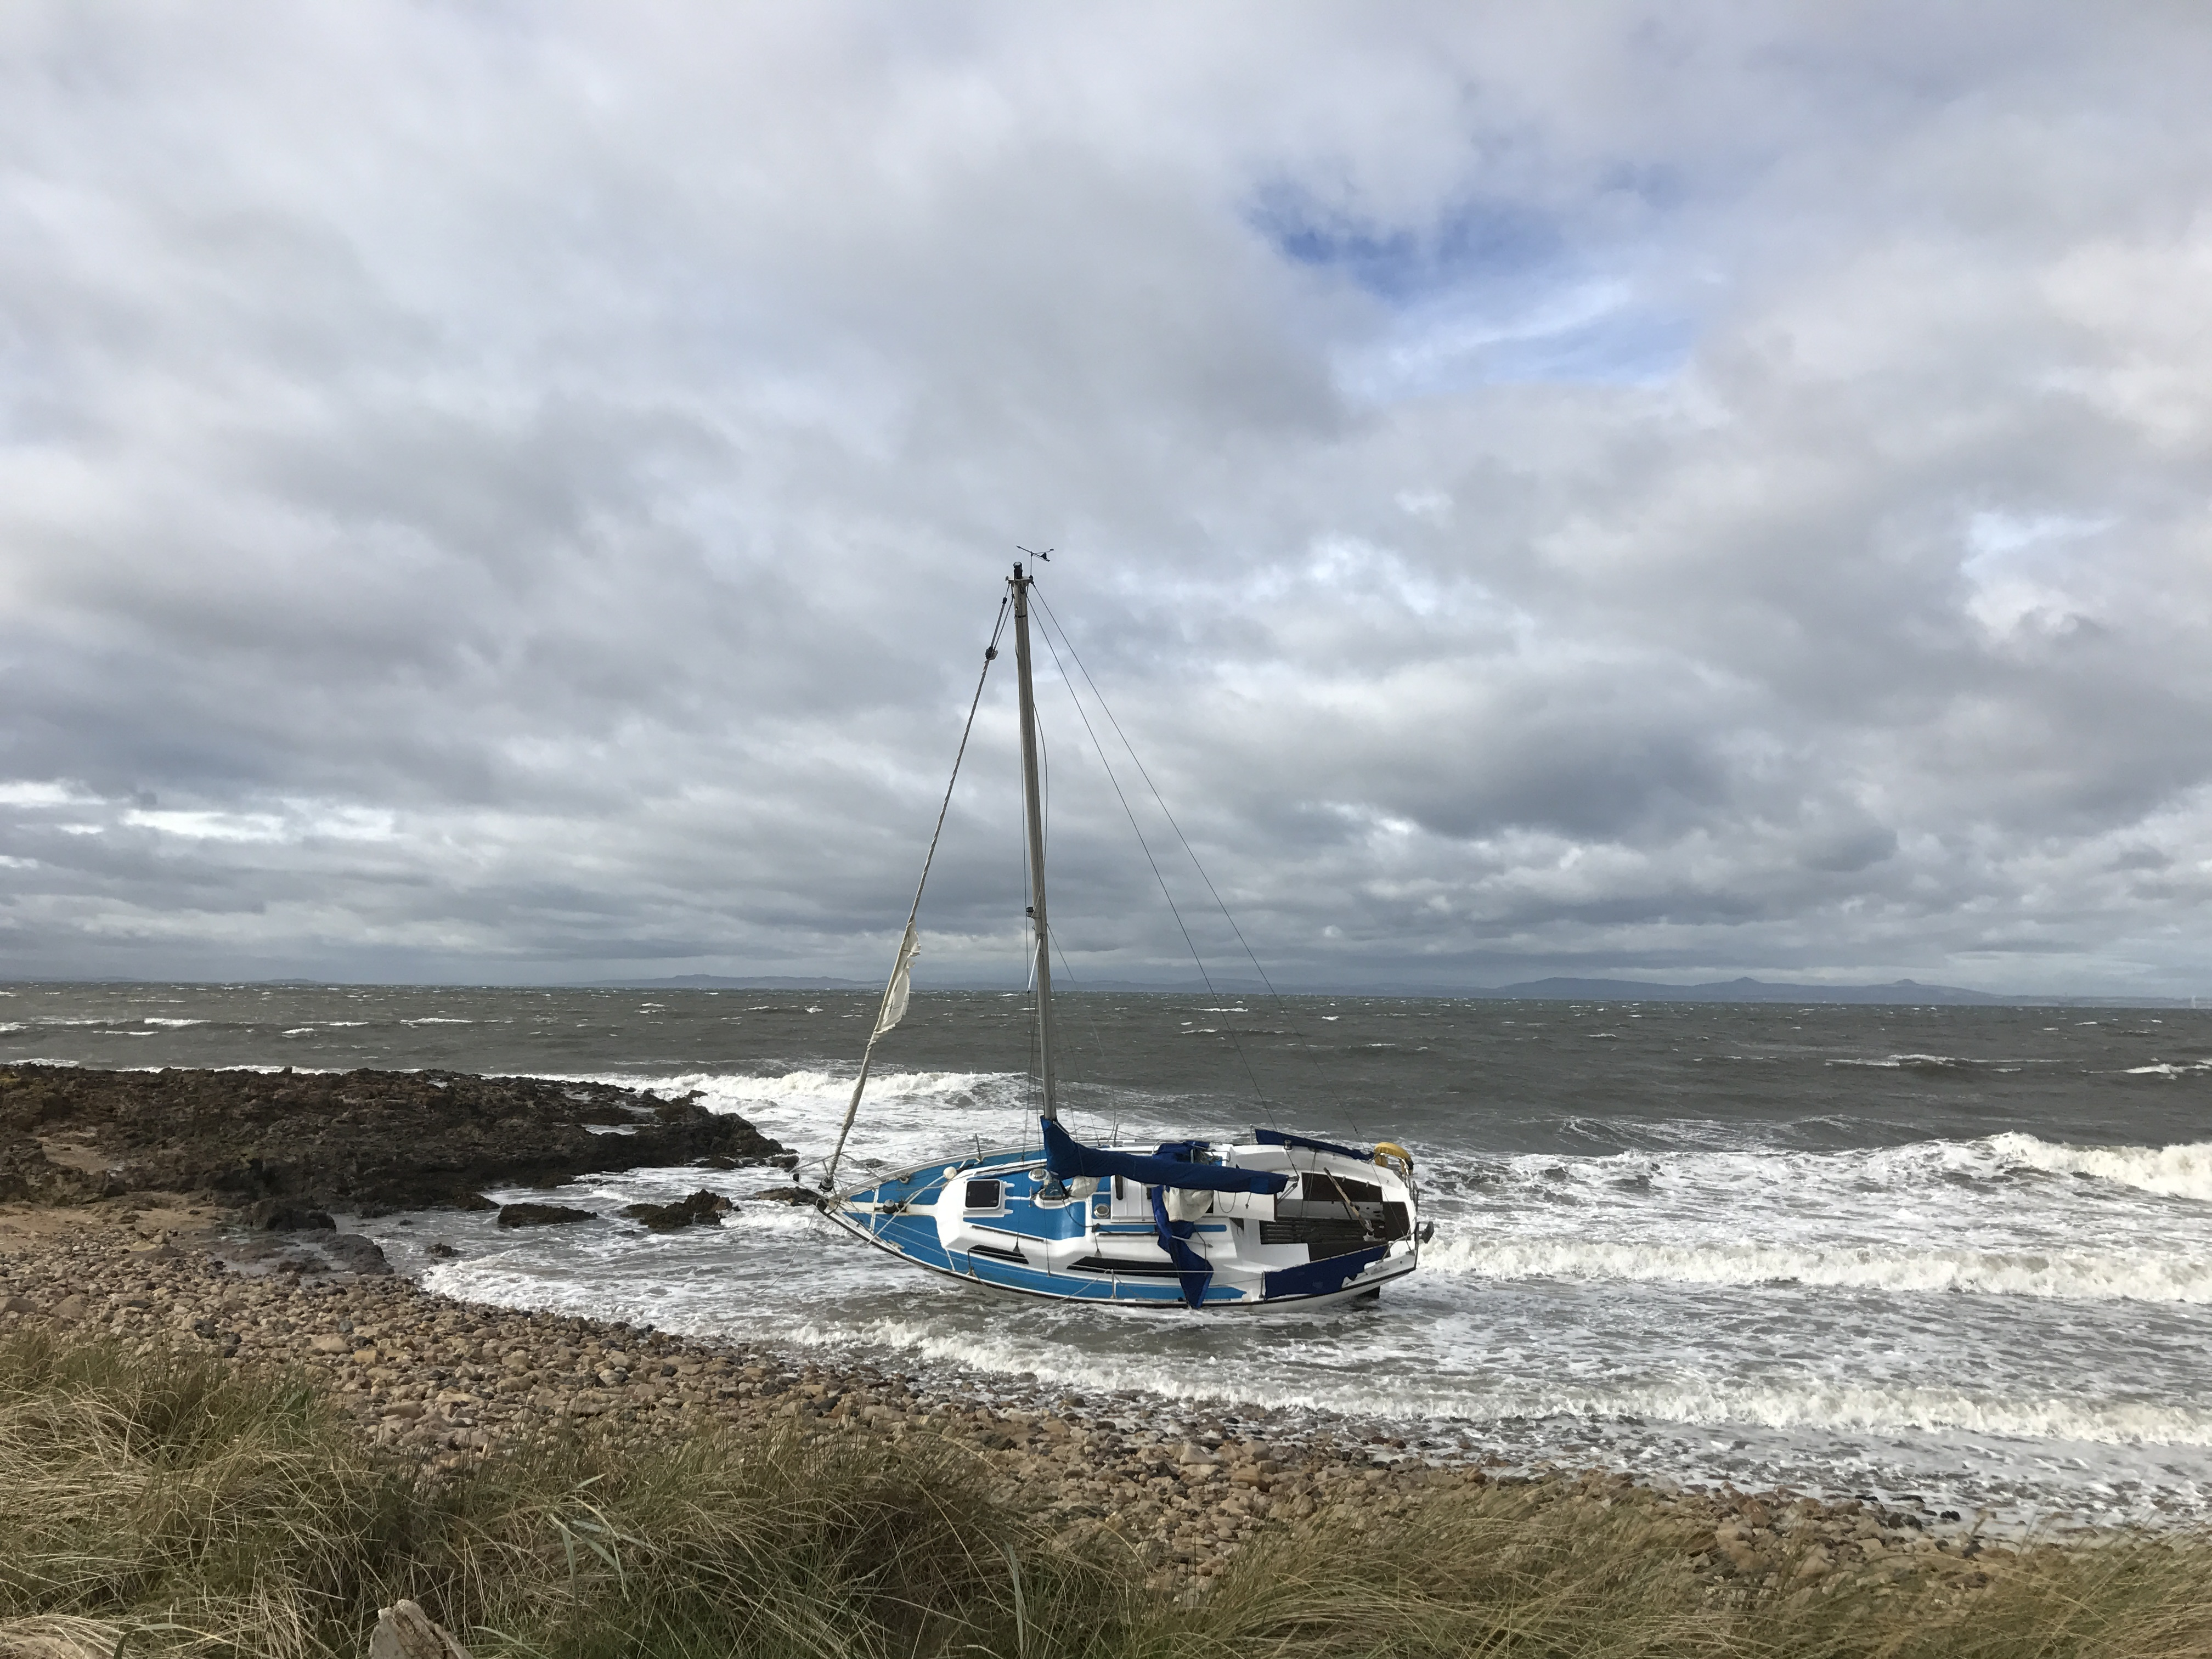 Yacht lying on its side with heavy seas in the background.